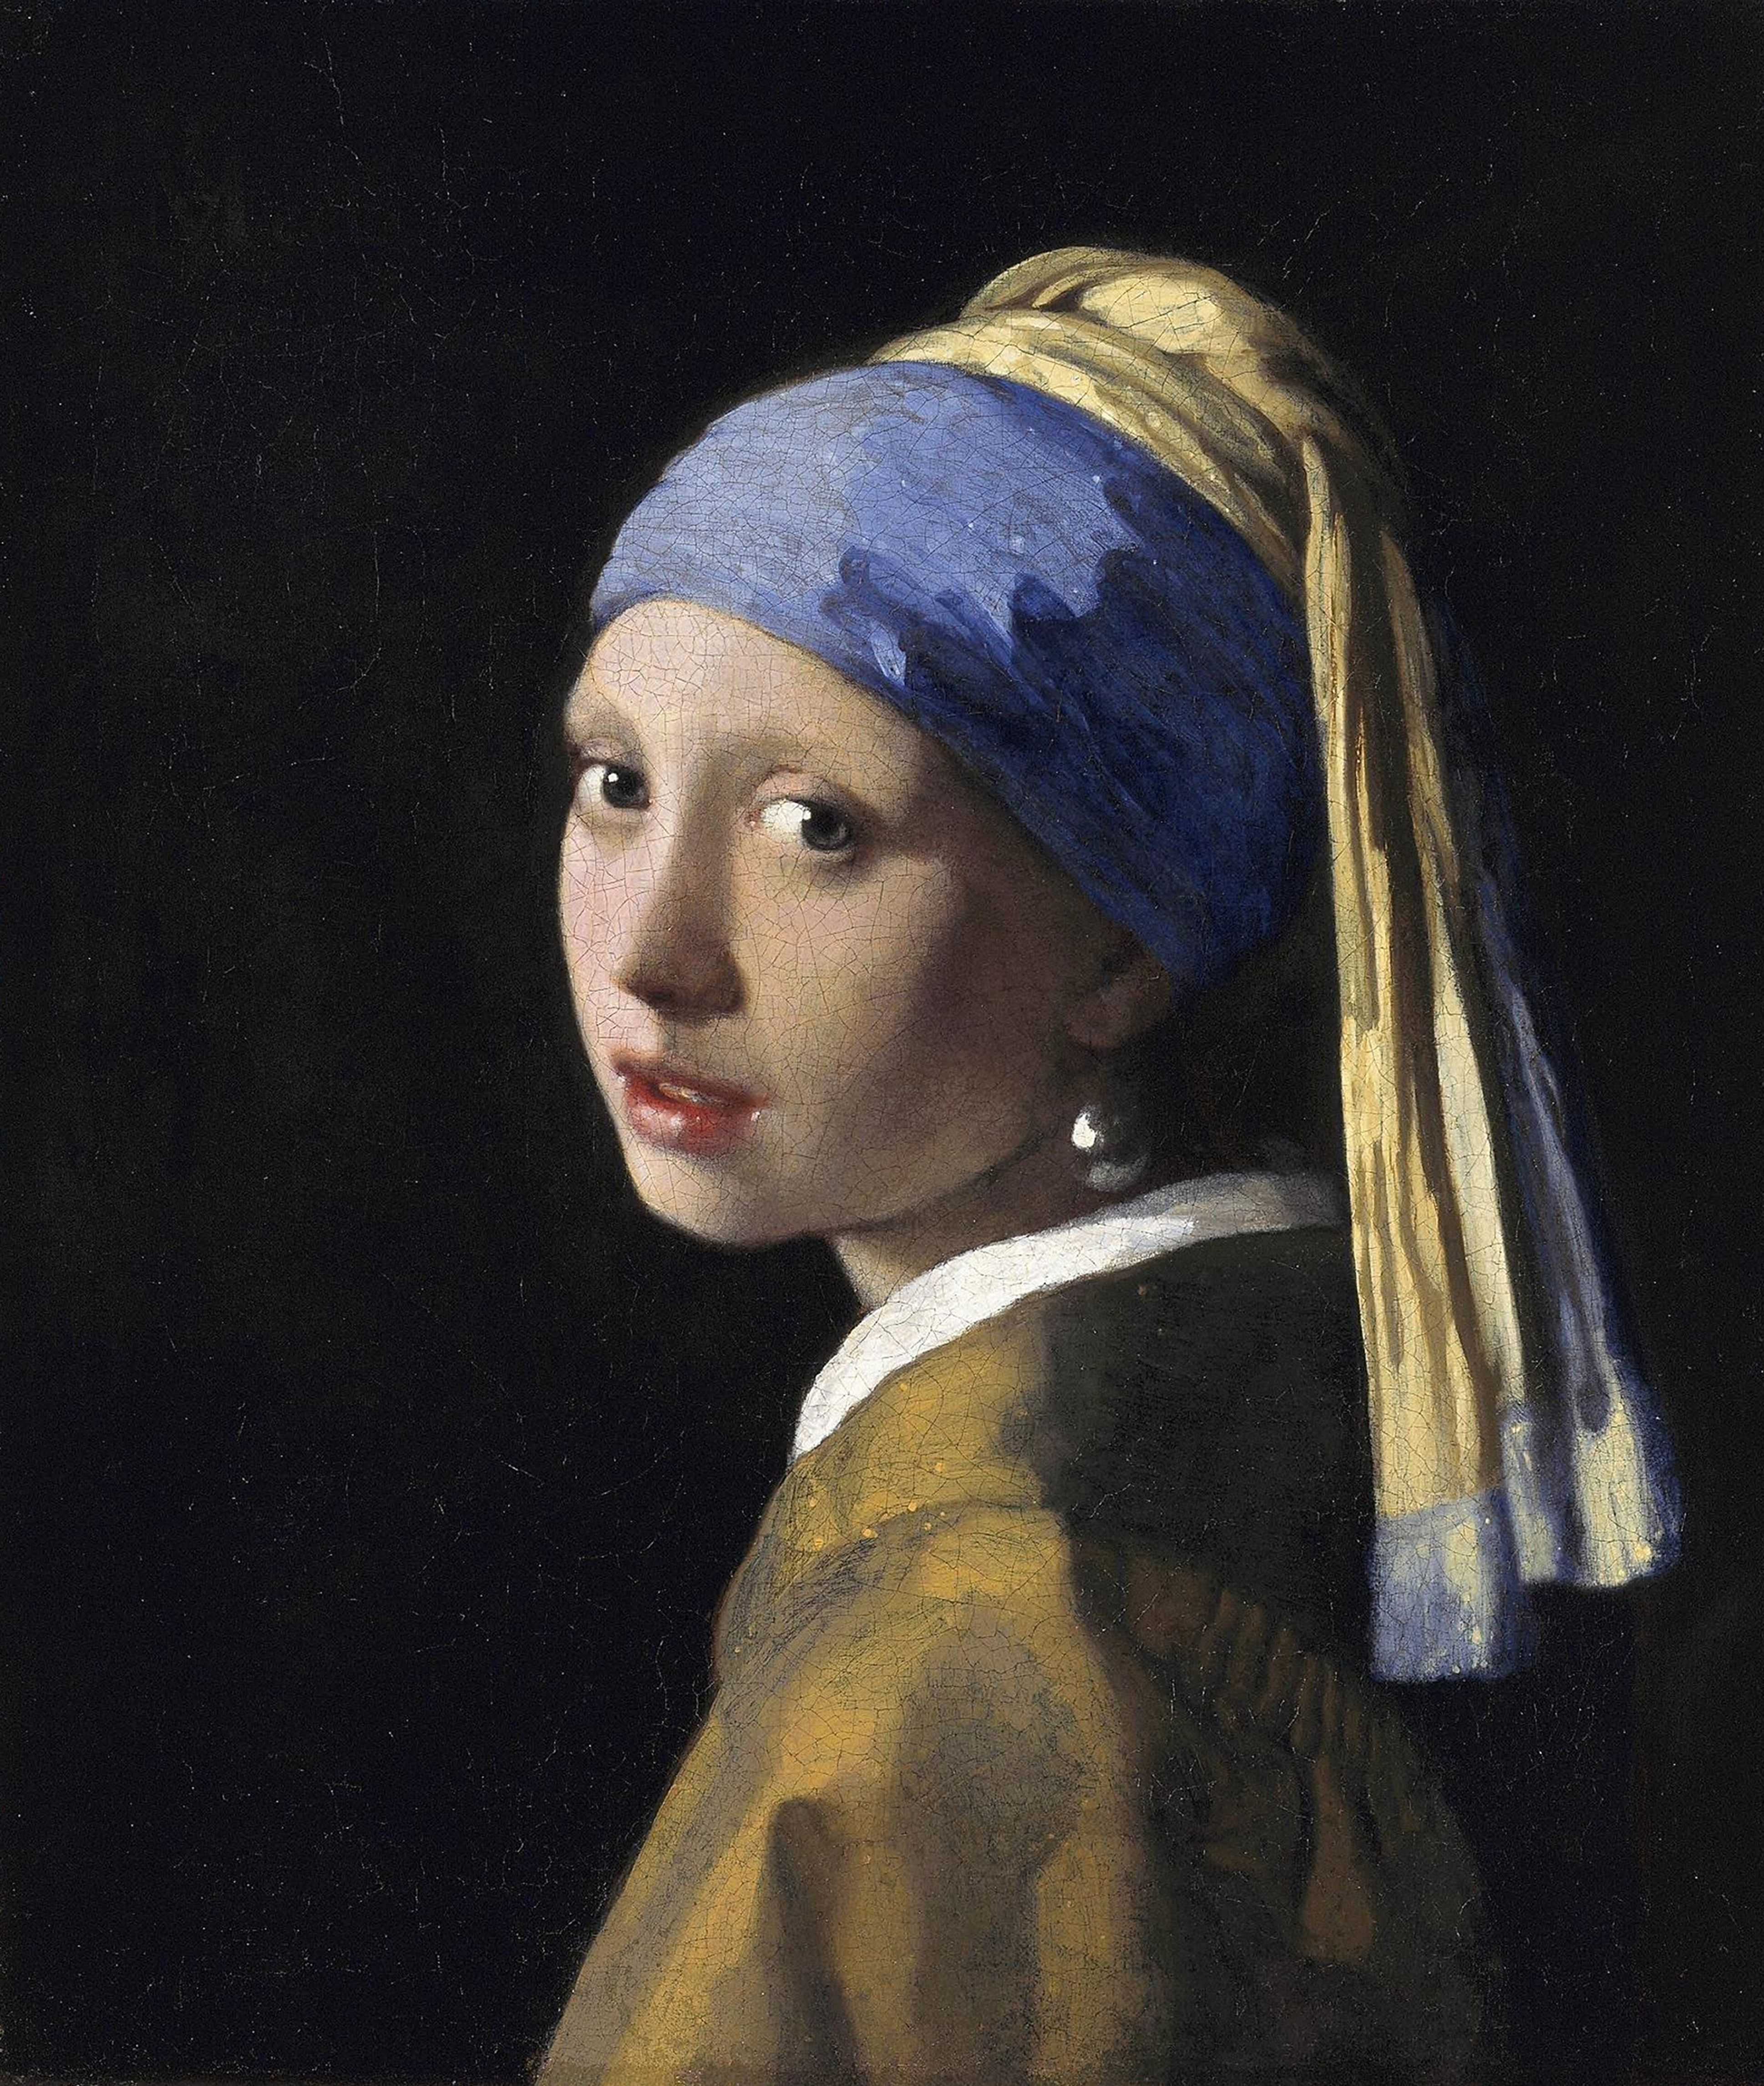 Girl with a Pearl Earring by Jan Vermeer